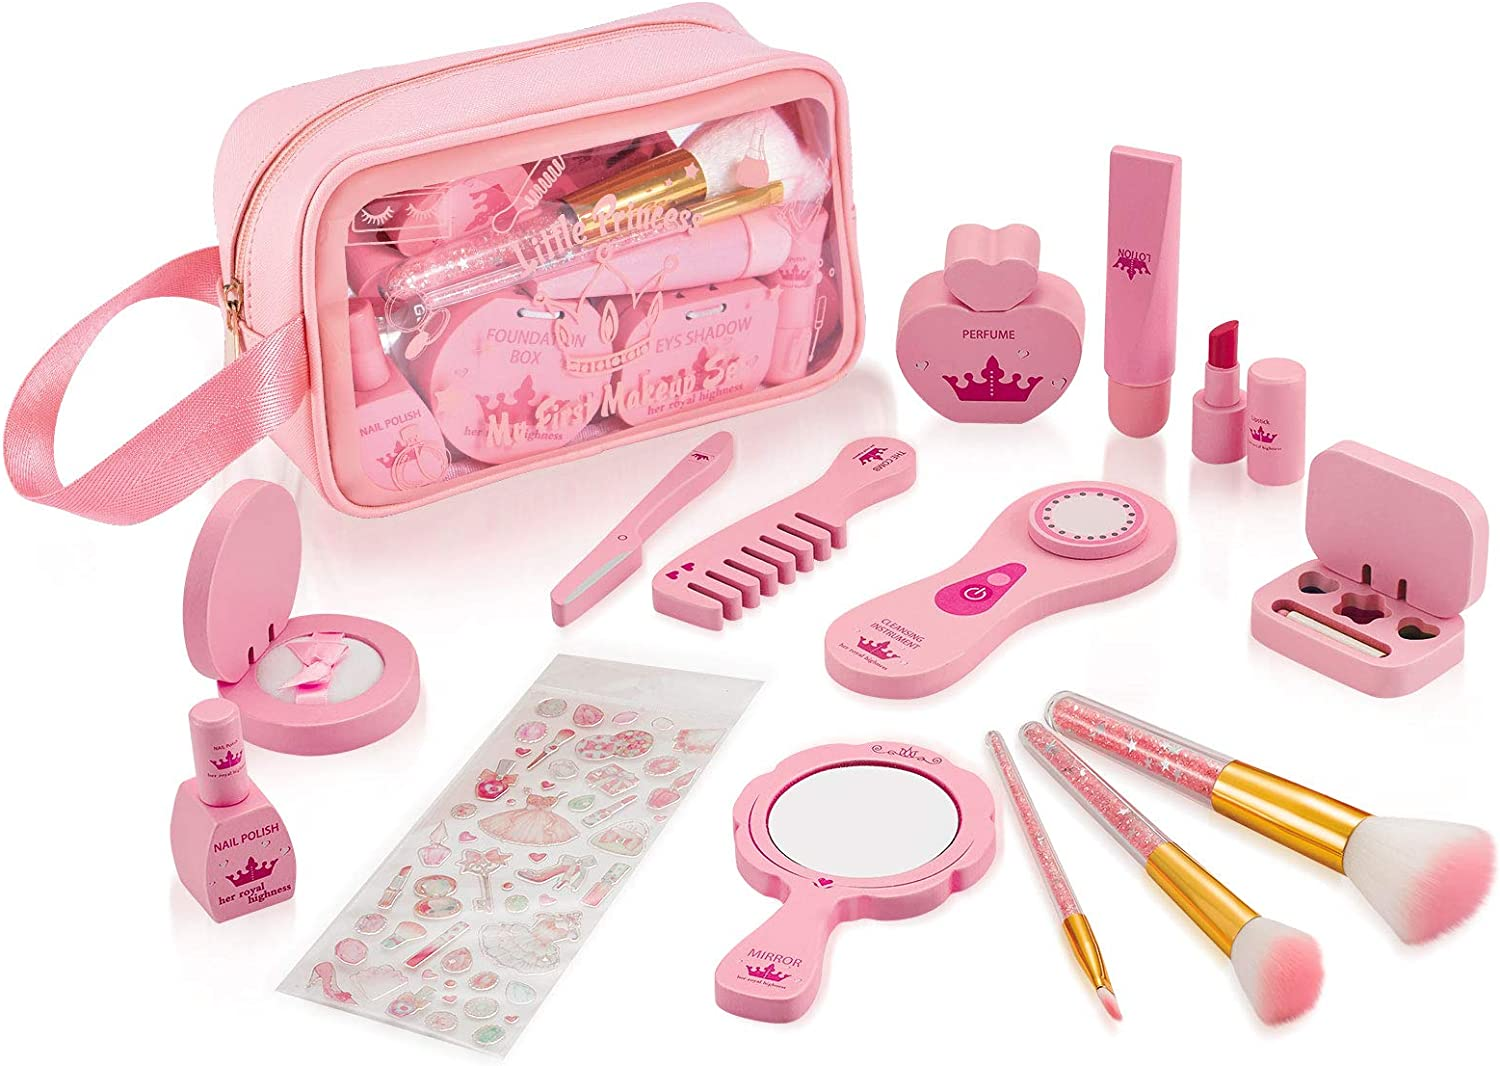 NextX First Pretend Girl Toys, Wooden Makeup Kit for Princess